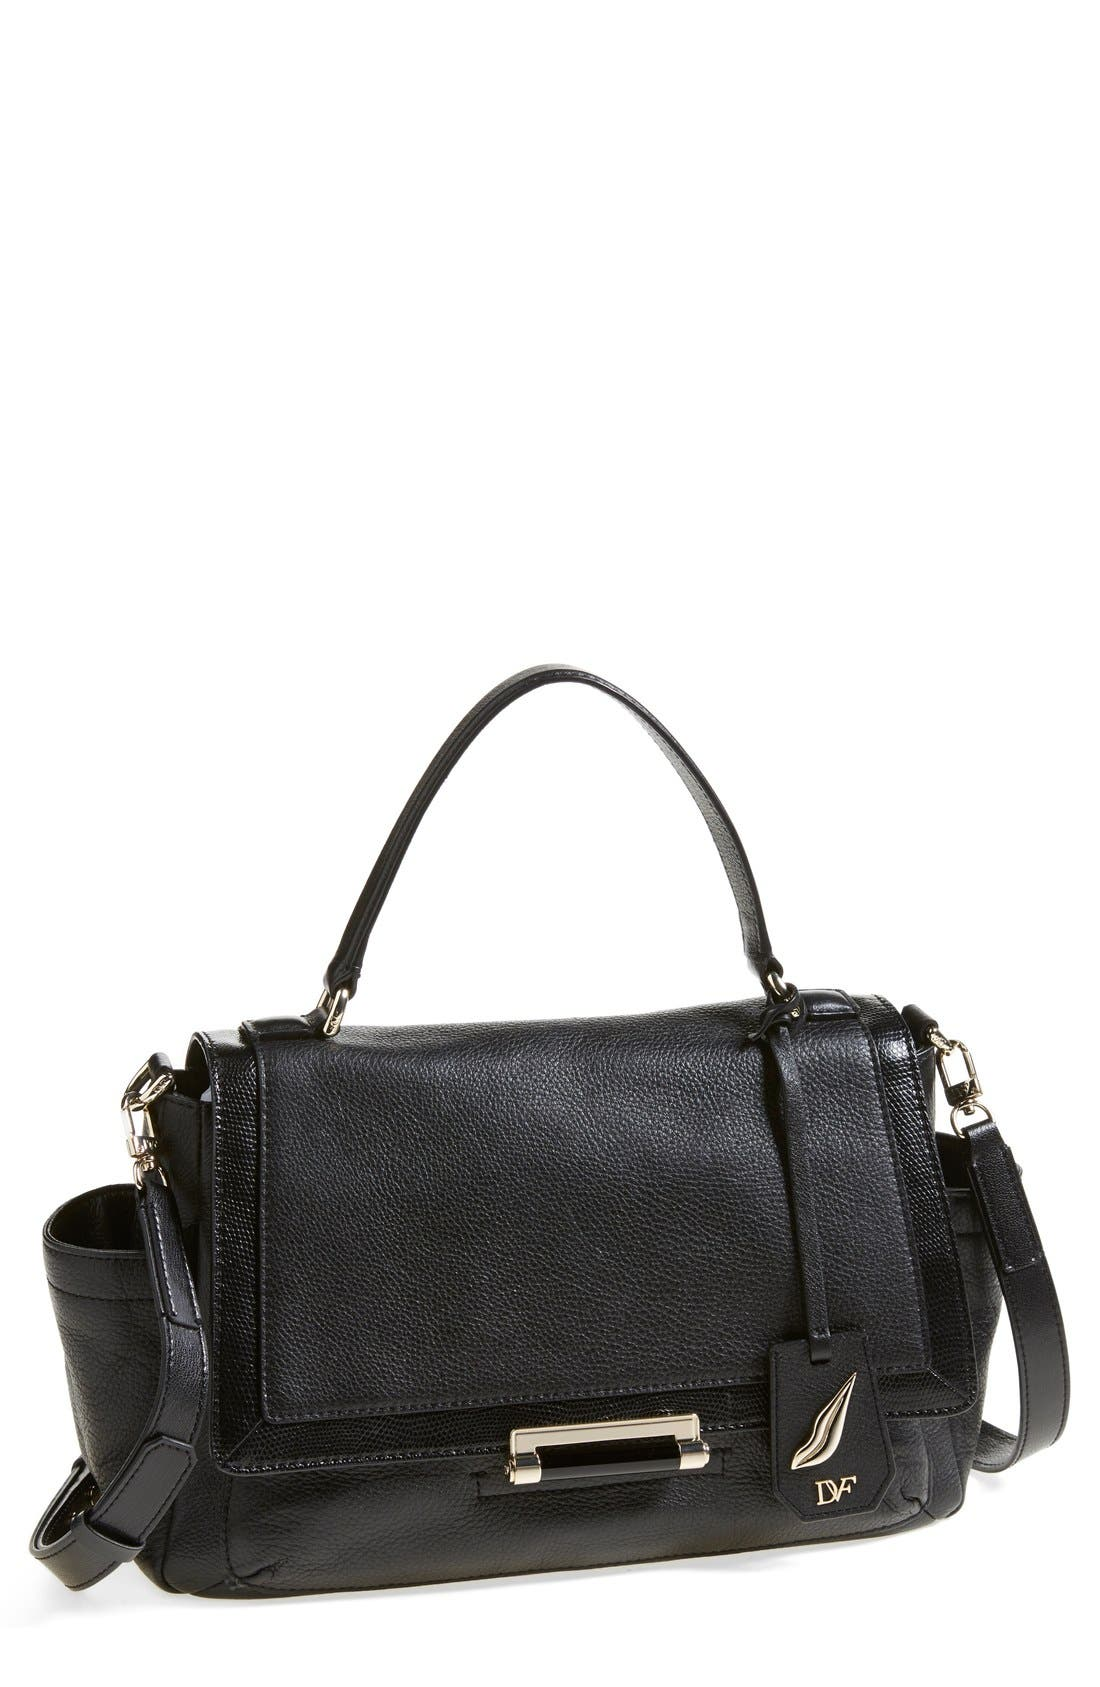 Alternate Image 1 Selected - Diane von Furstenberg '440 Courier' Leather Satchel